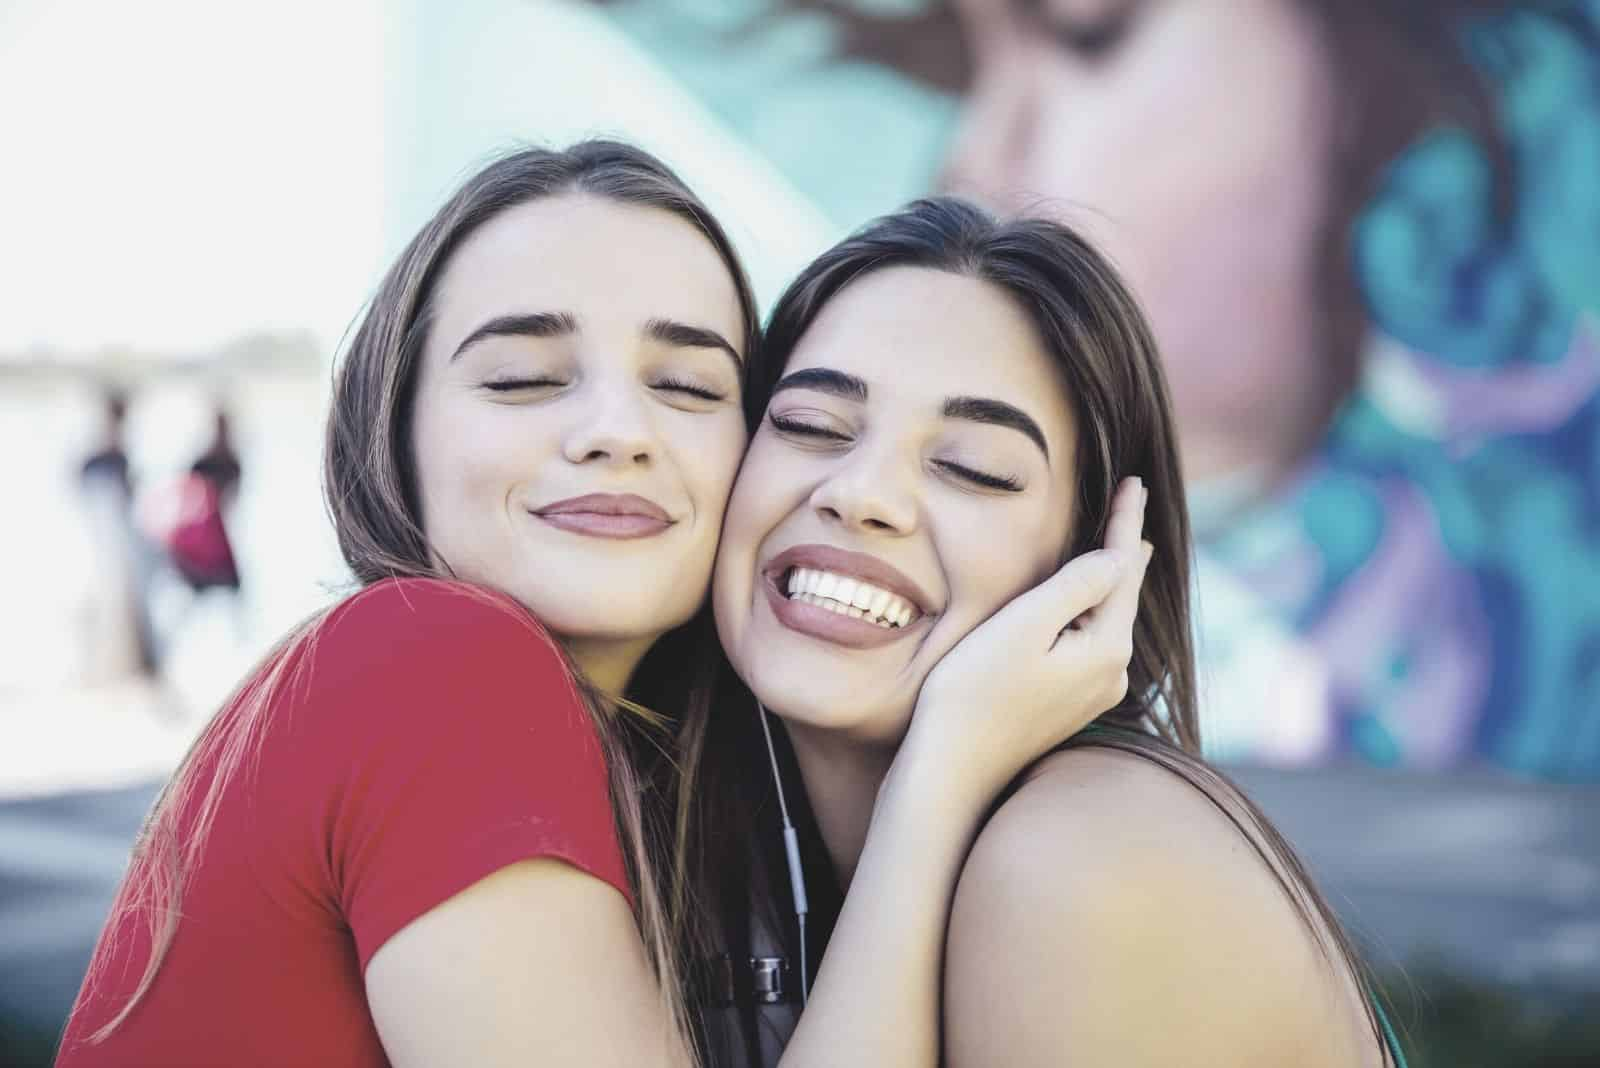 two best female friends hugging each other and closing their eyes in close up photography